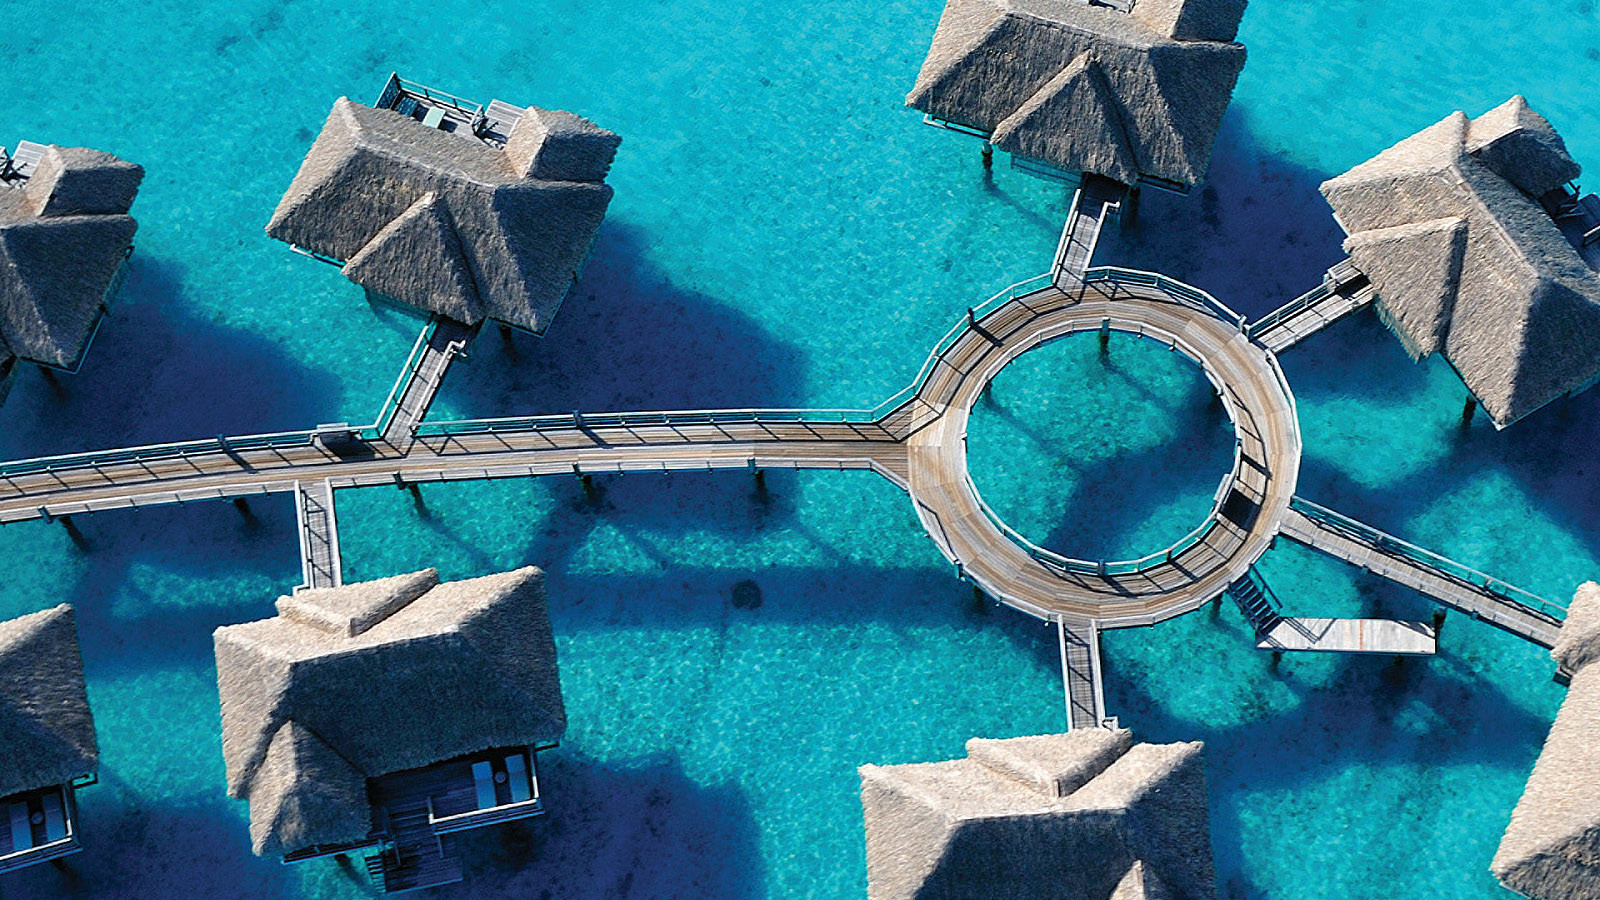 news-main-four-seasons-resort-bora-bora-named-the-top-resort-in-french-polynesia-conde-nast-travelers-readers-choice-awards.1602159165.jpg